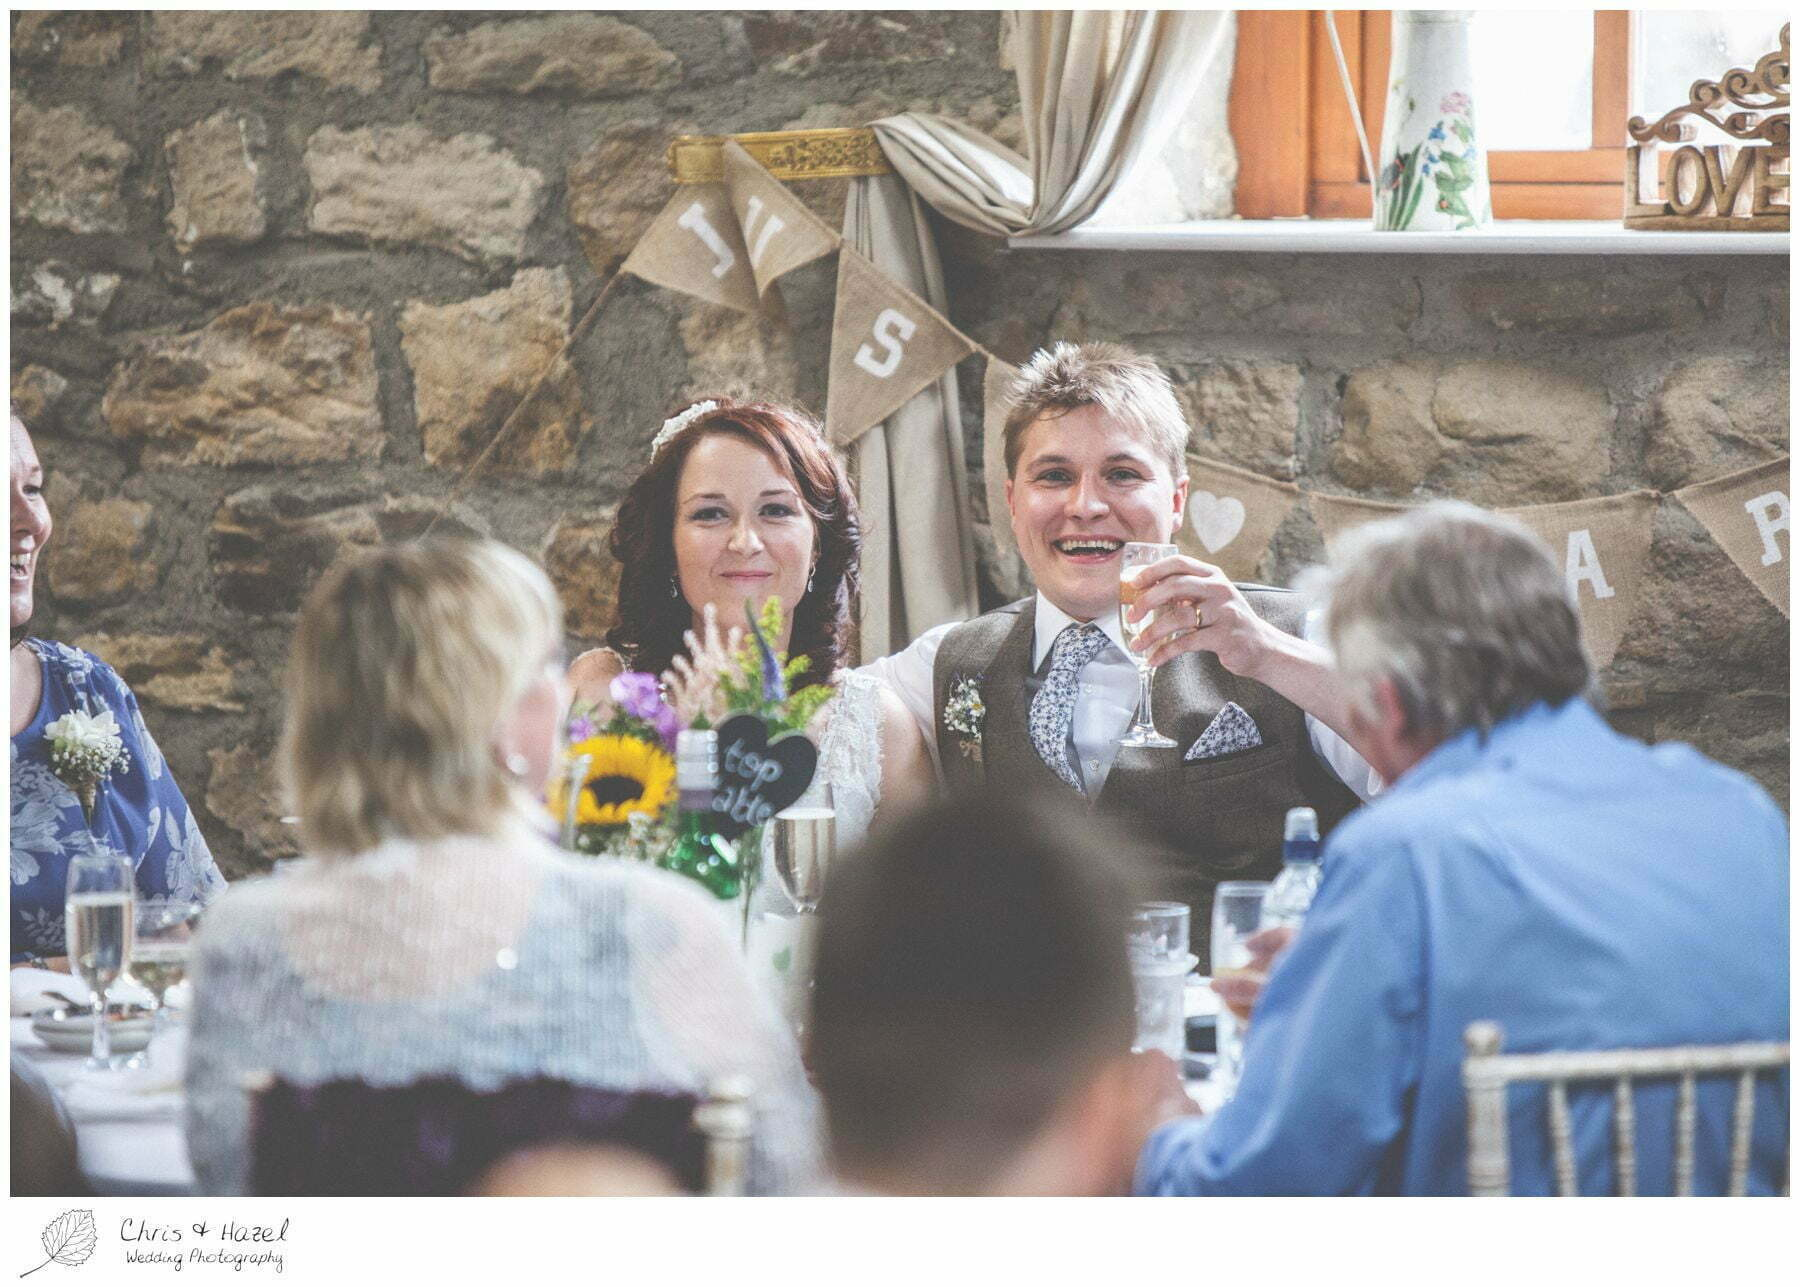 bride and groom speech, wedding breakfast barn, wood wedding theme, eco wedding, love letters, wedding, Eccup Wedding Photographer, Lineham Farm, Wedding Photography Leeds, Chris and Hazel Wedding Photography, Richard Wyatt, Laura Kelly